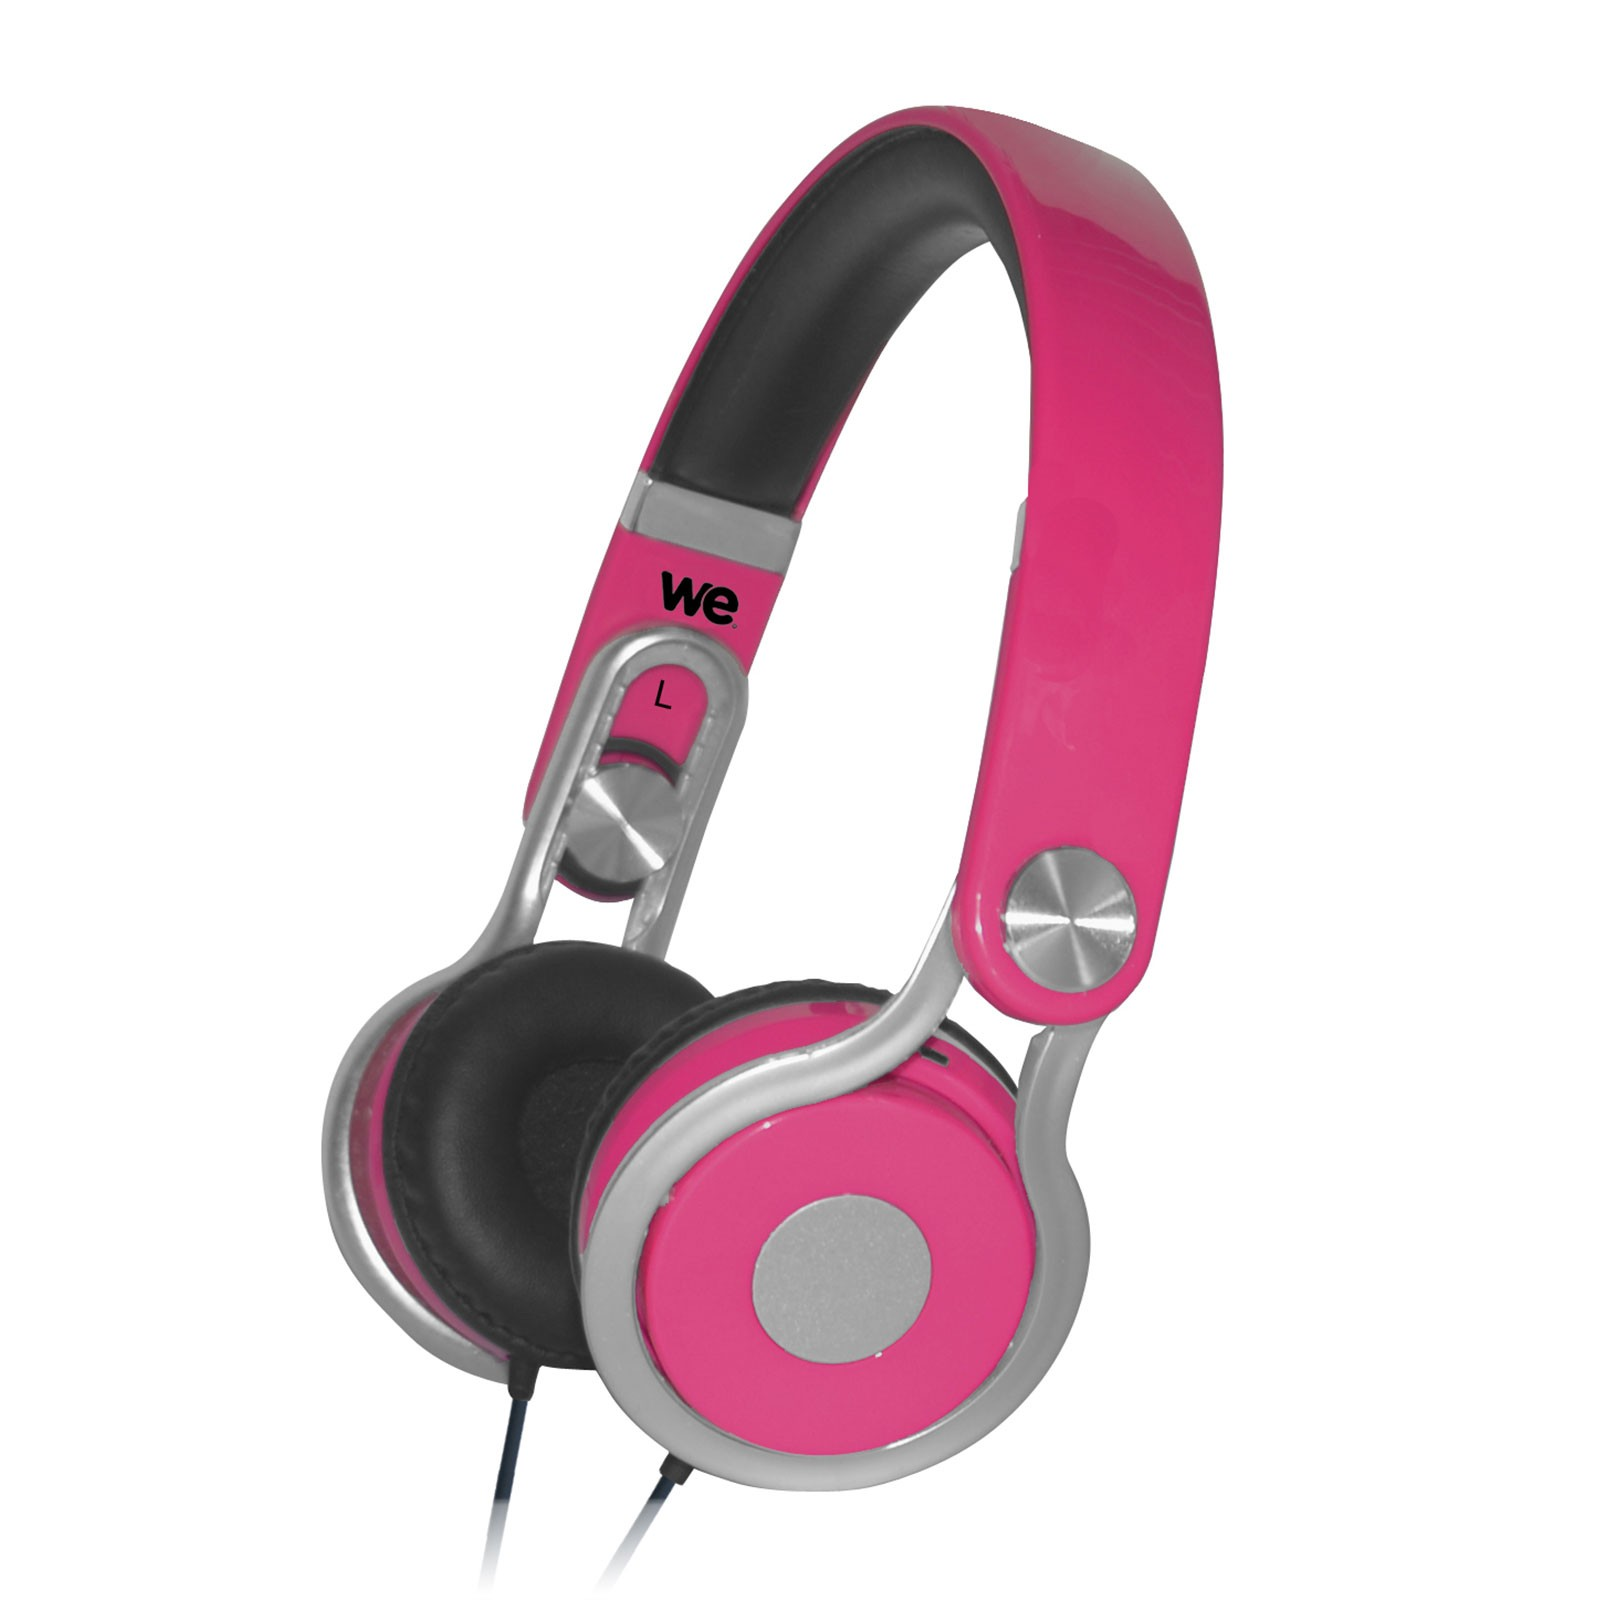 casque audio enfant rose we